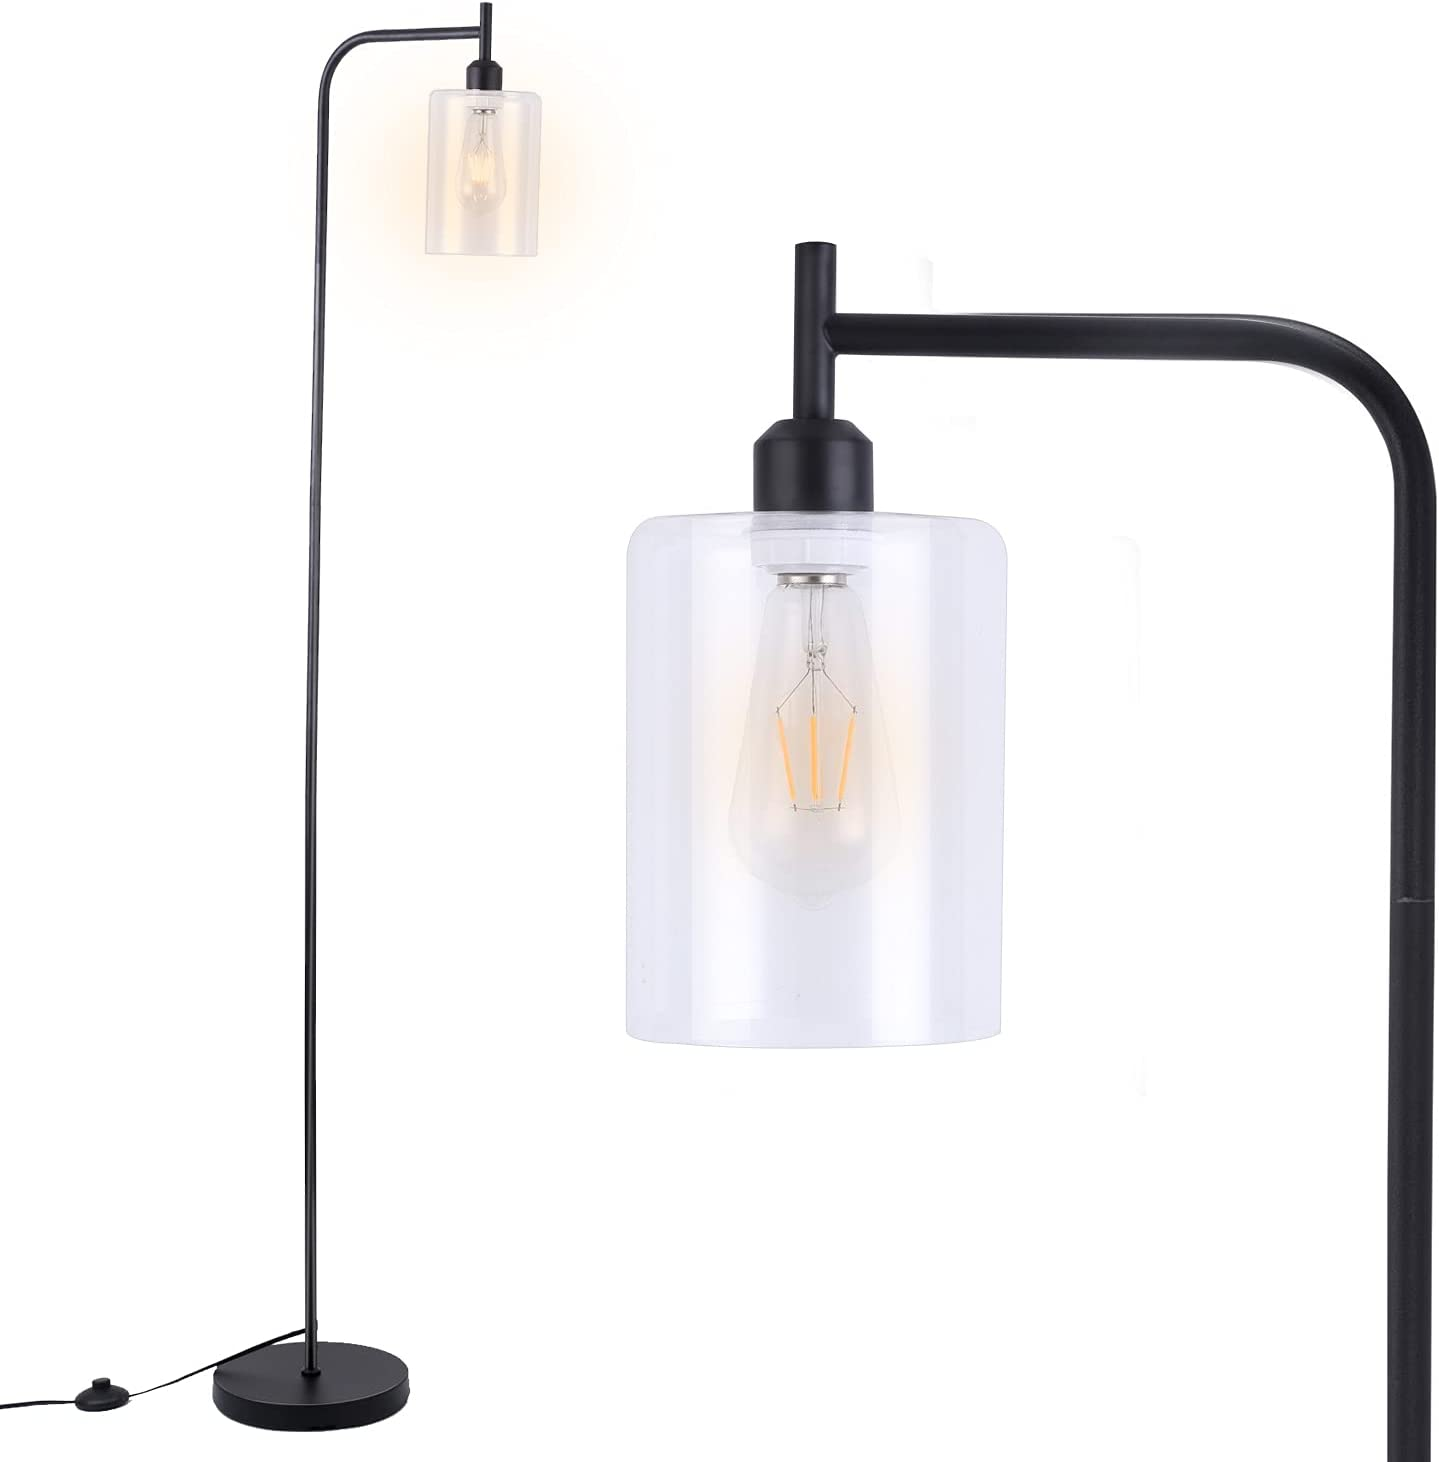 LED Floor Lamp,Black Industrial Floor Lamp with Hanging Glass Lamp Shade,Modern Standing Home Decor Lamp,Classic Vintage Standing Lamp for Reading,Living Room,Bedroom,Office,E26 Base,LED Bulb Included